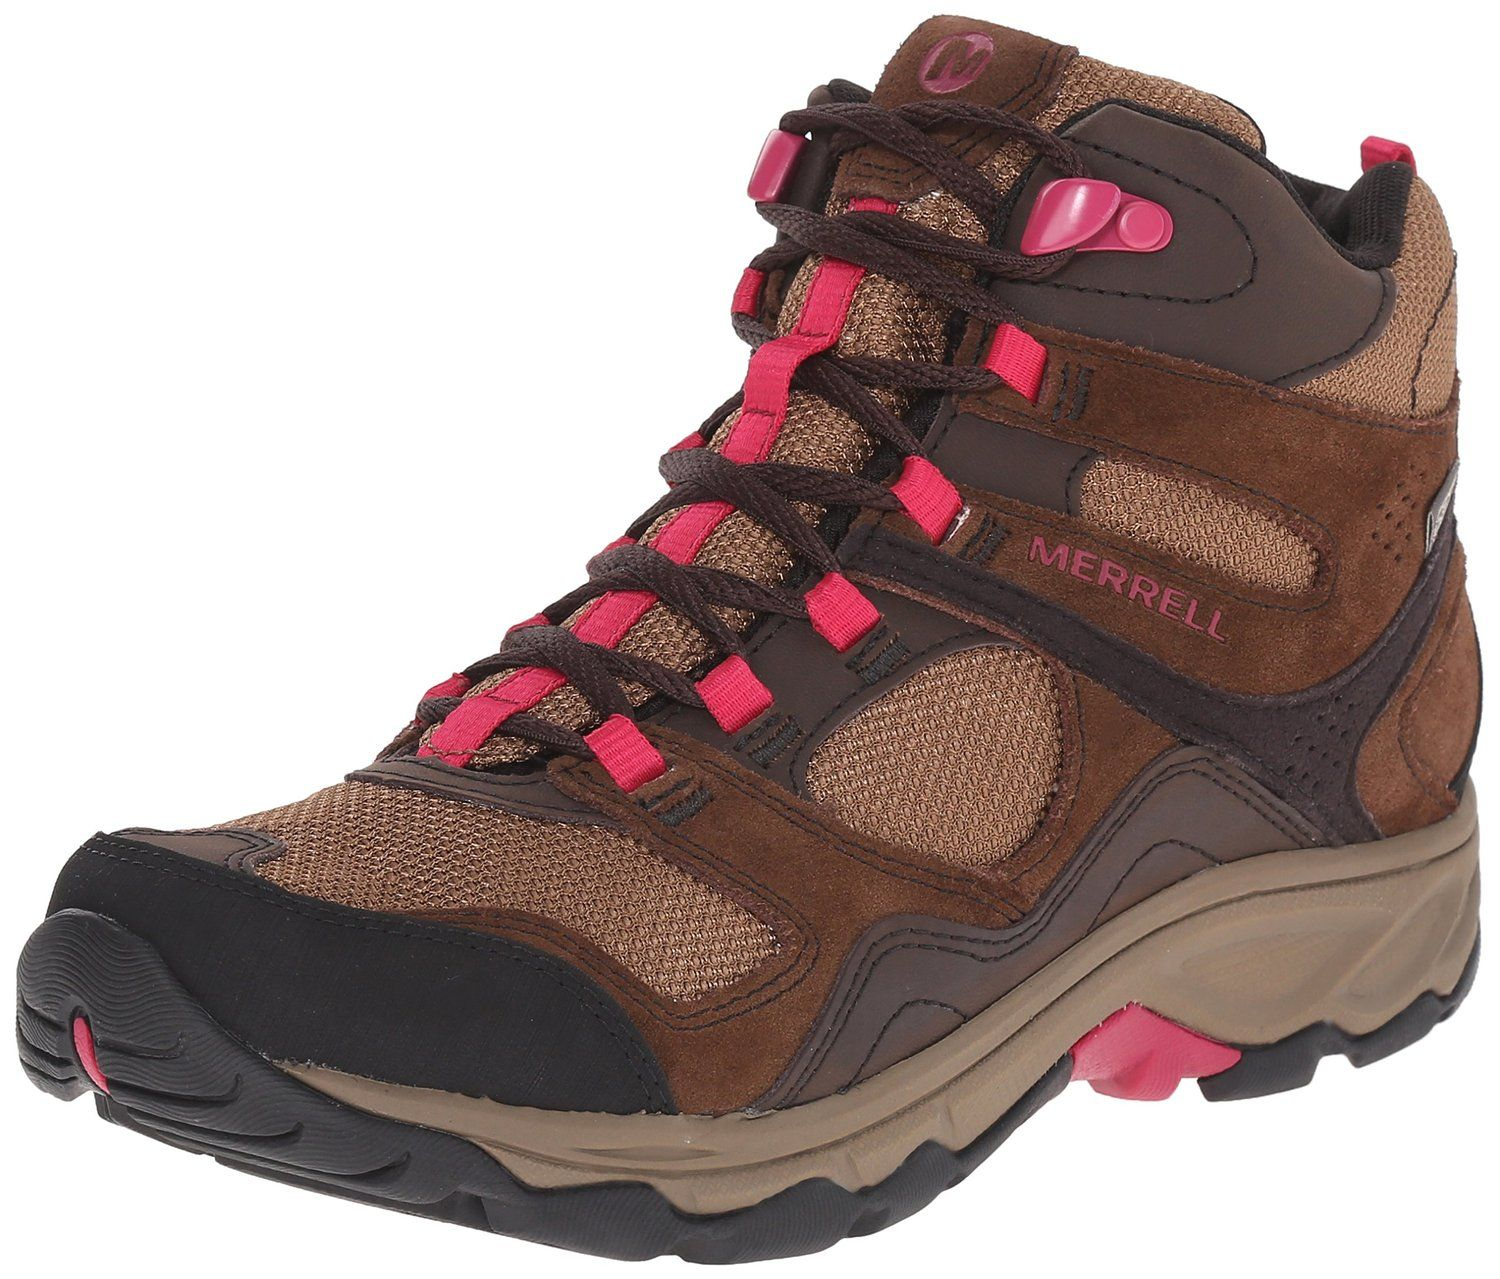 1c1d1f0e298b4 Amazon.com | Merrell Women's Kimsey Mid WTPF Hiking Shoe | Hiking ...